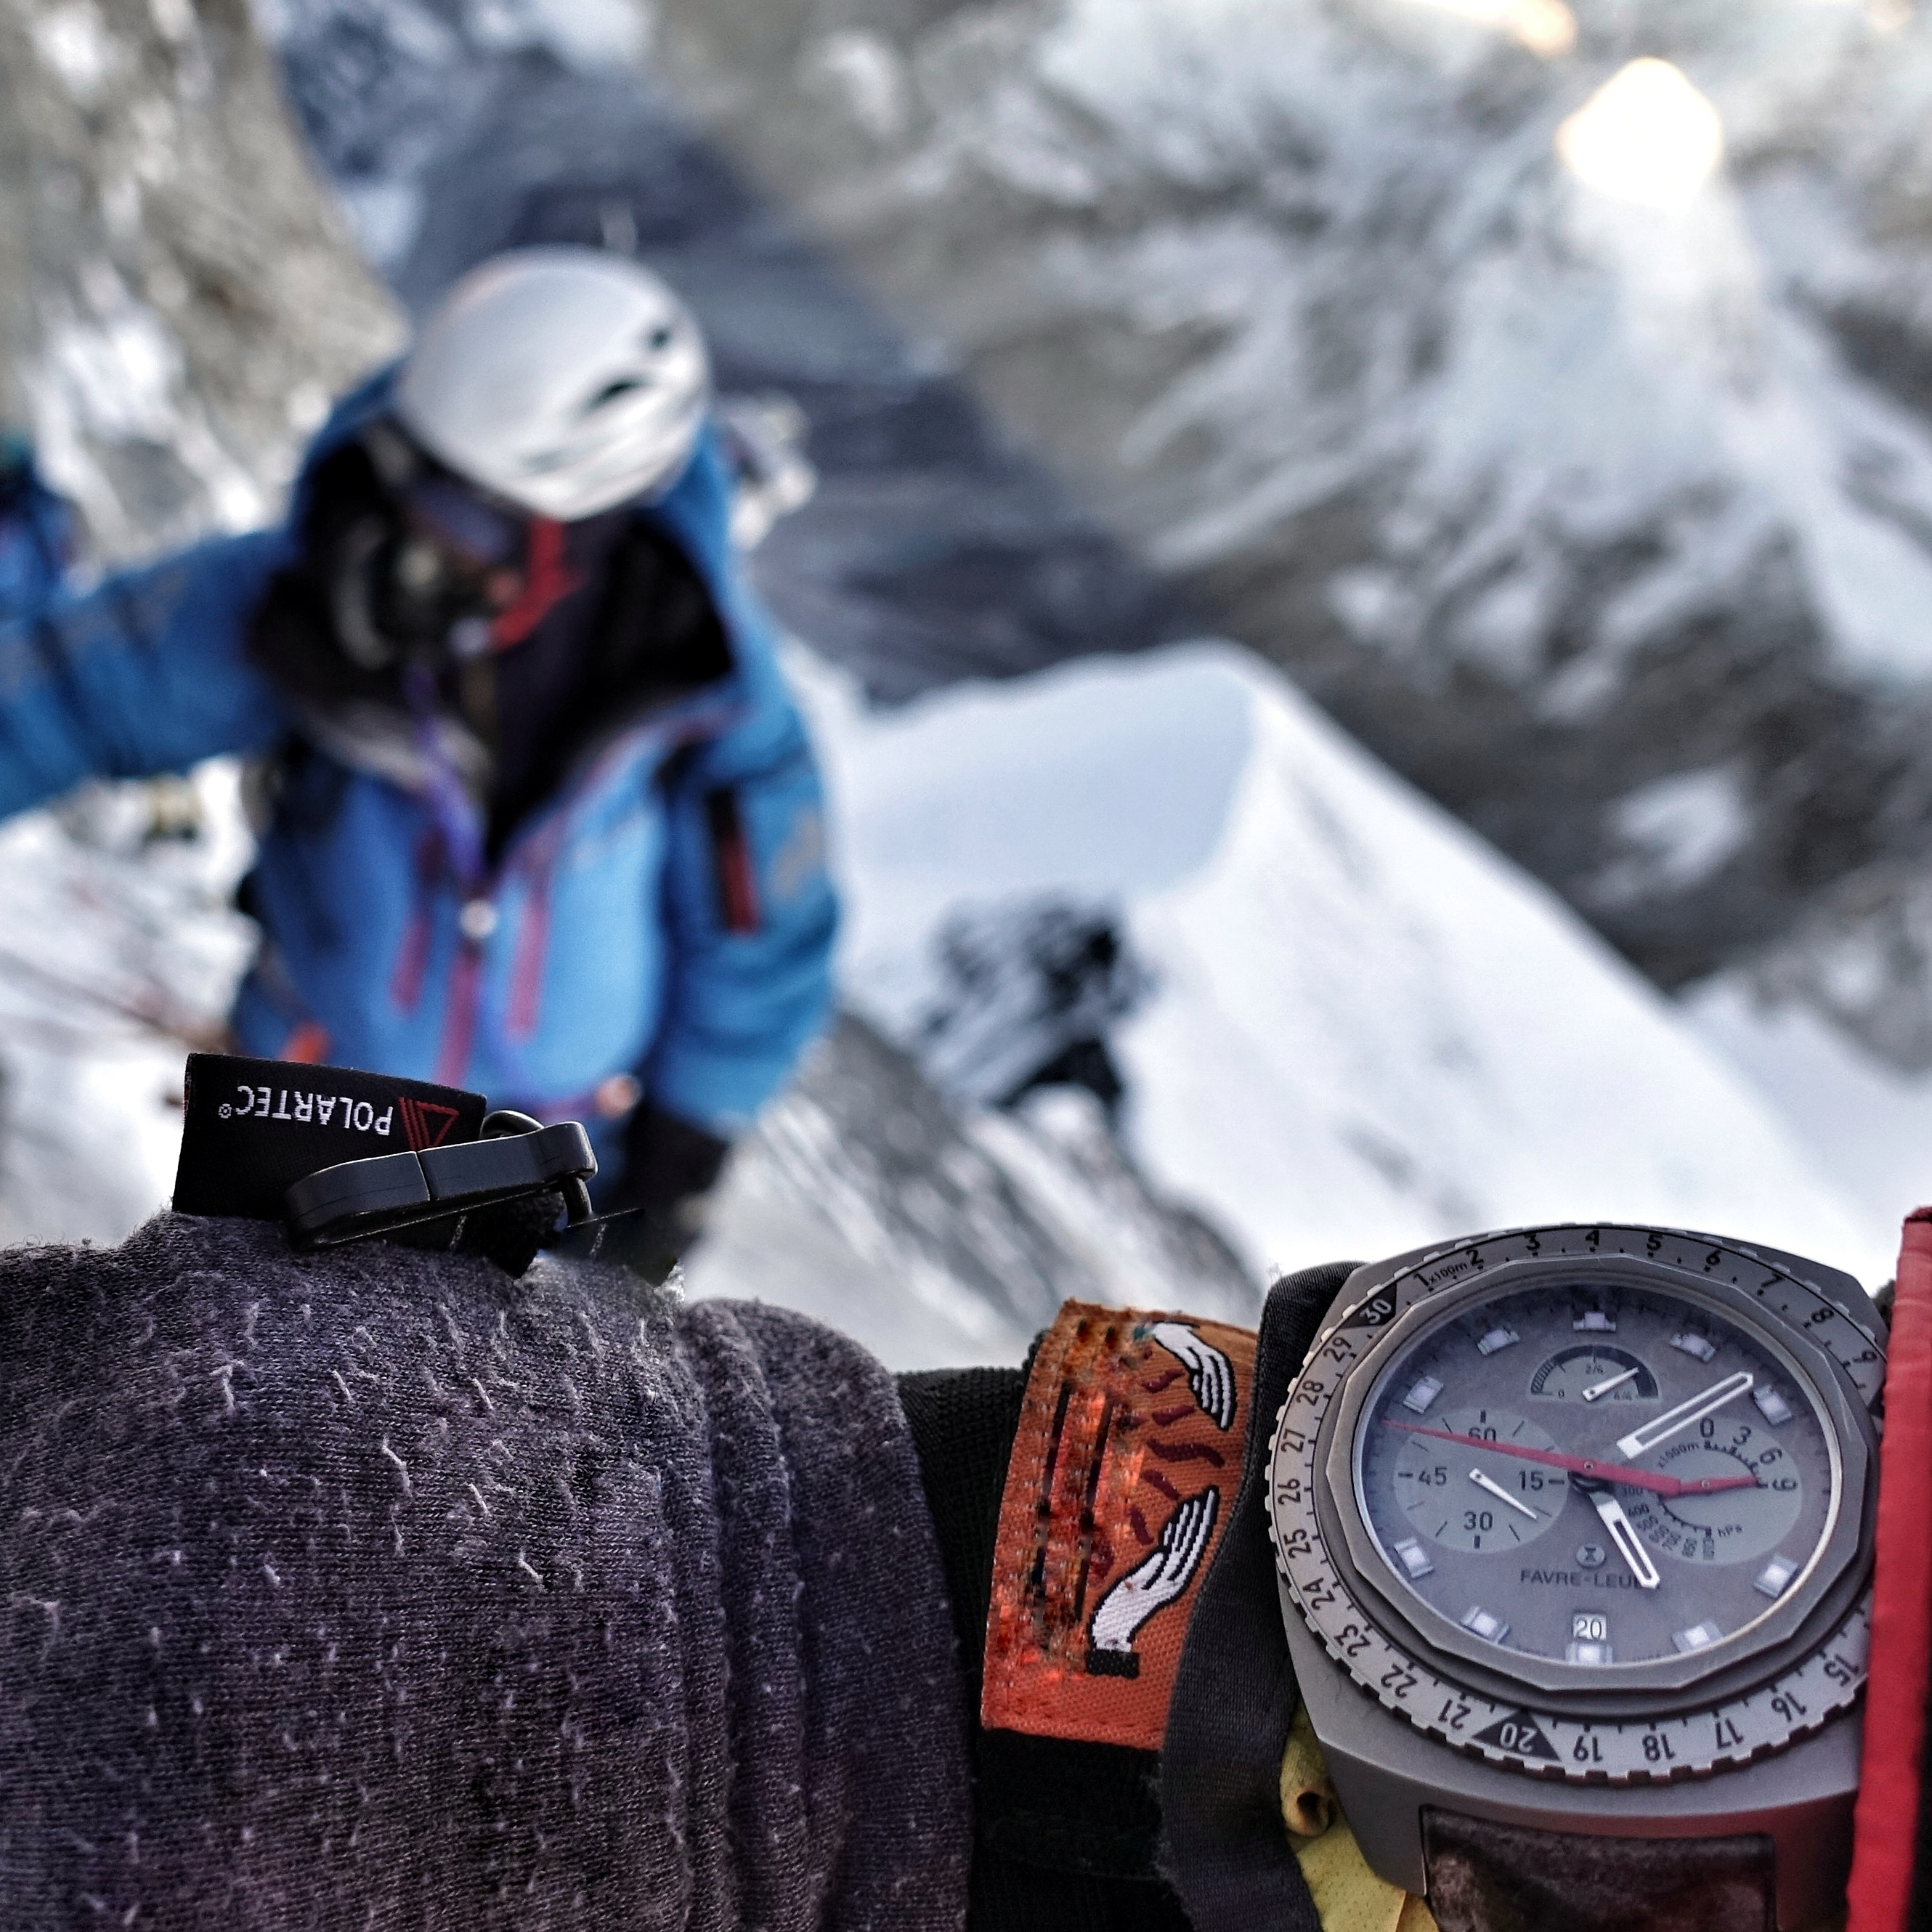 Raider Bivouac 9000 on Adrian Ballingers wrist while summiting Mt. Everest